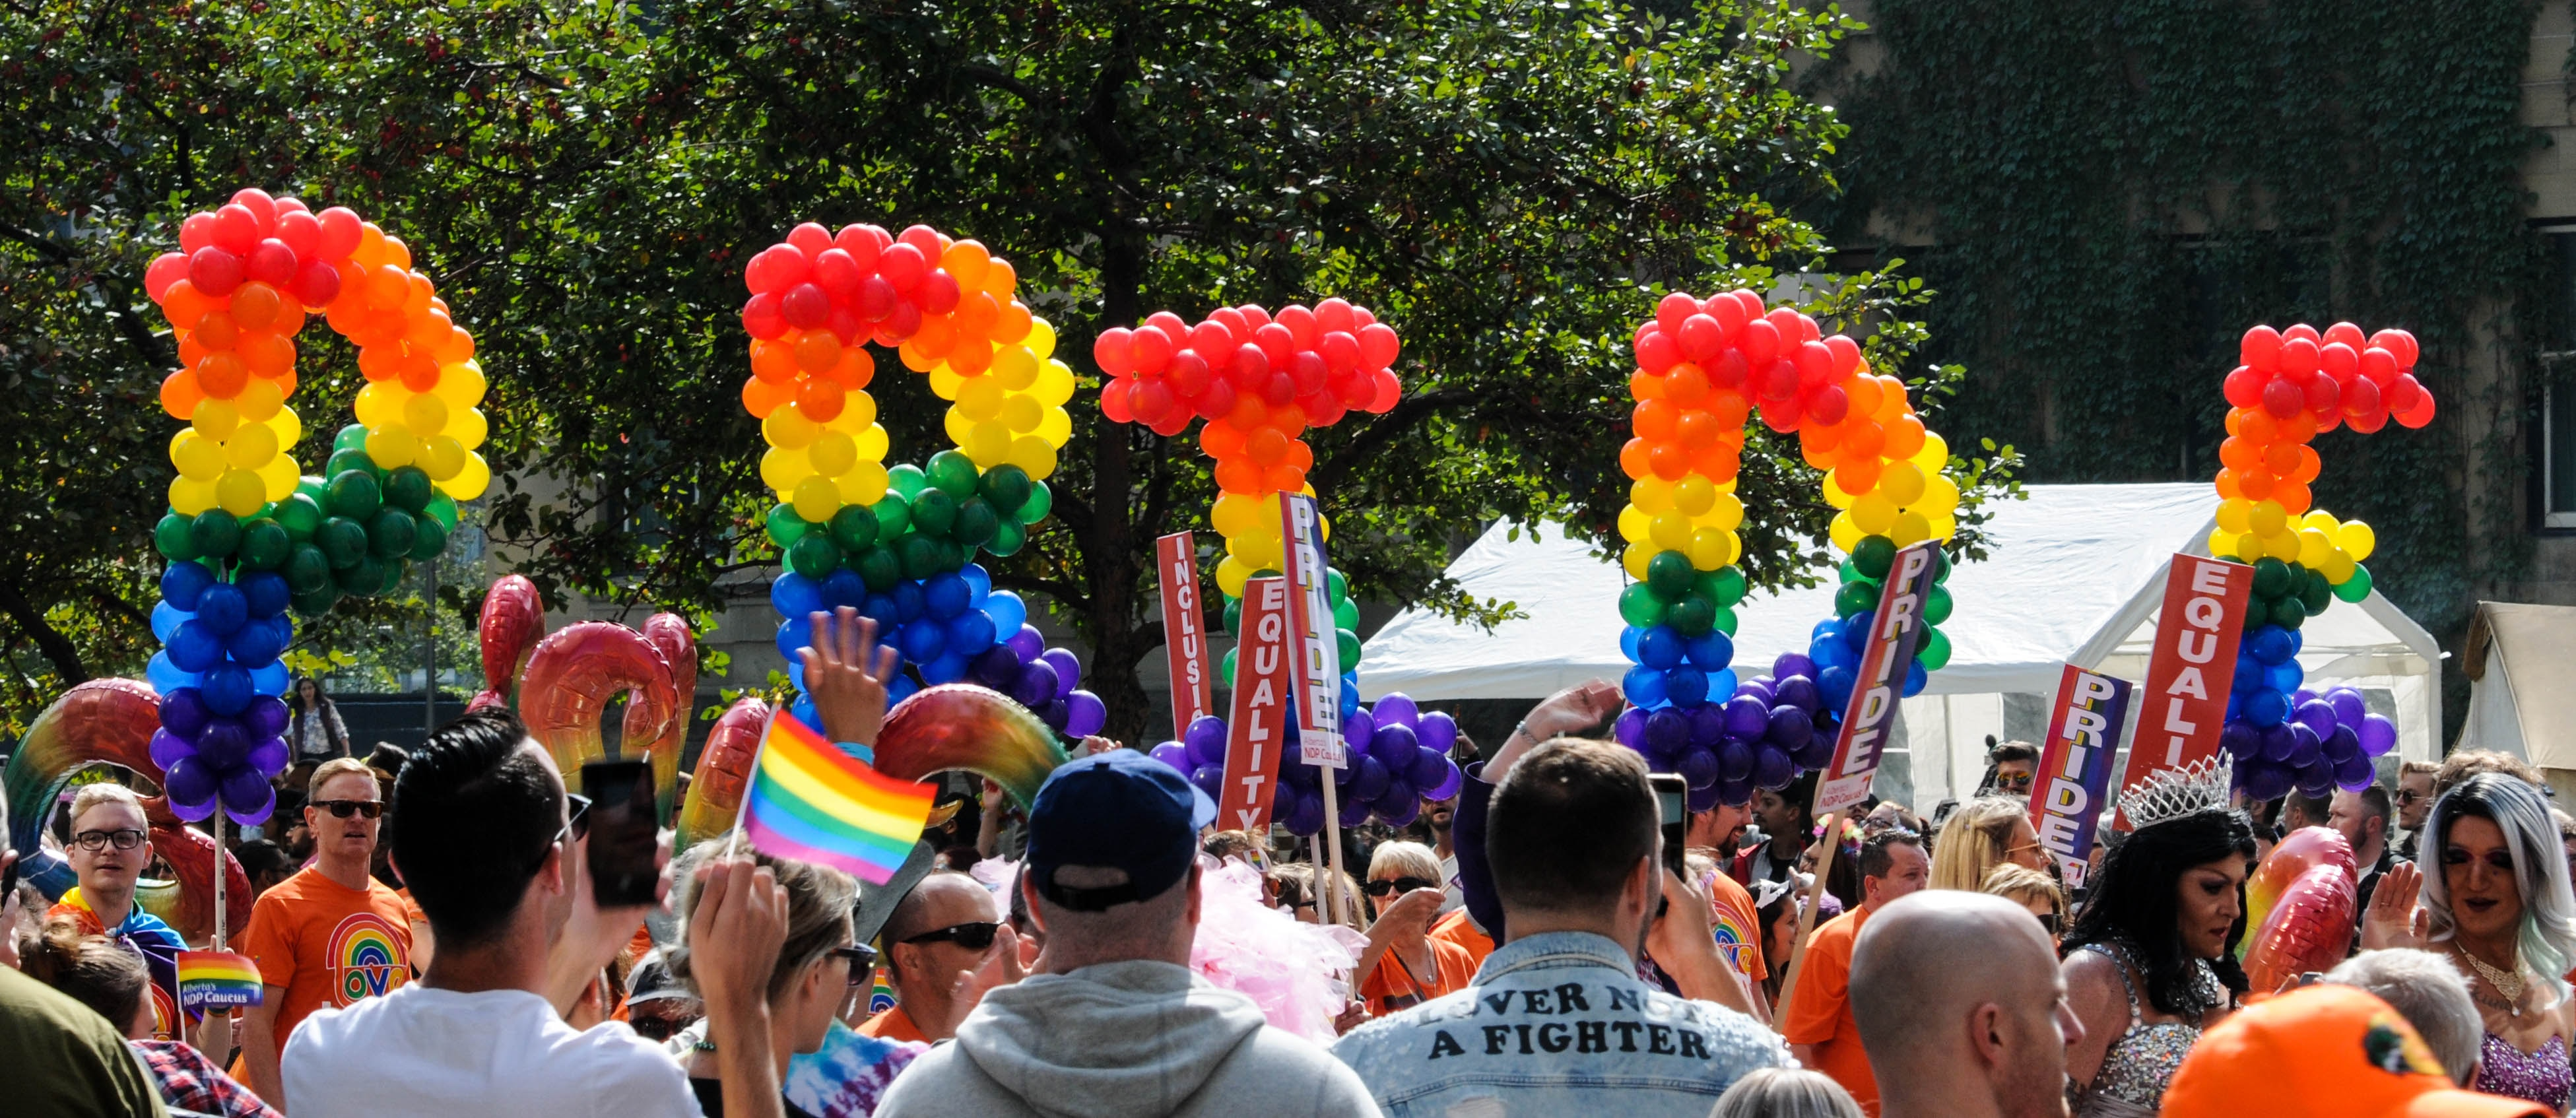 'The gay Olympics' | Sydney Wins Bid for WorldPride 2023